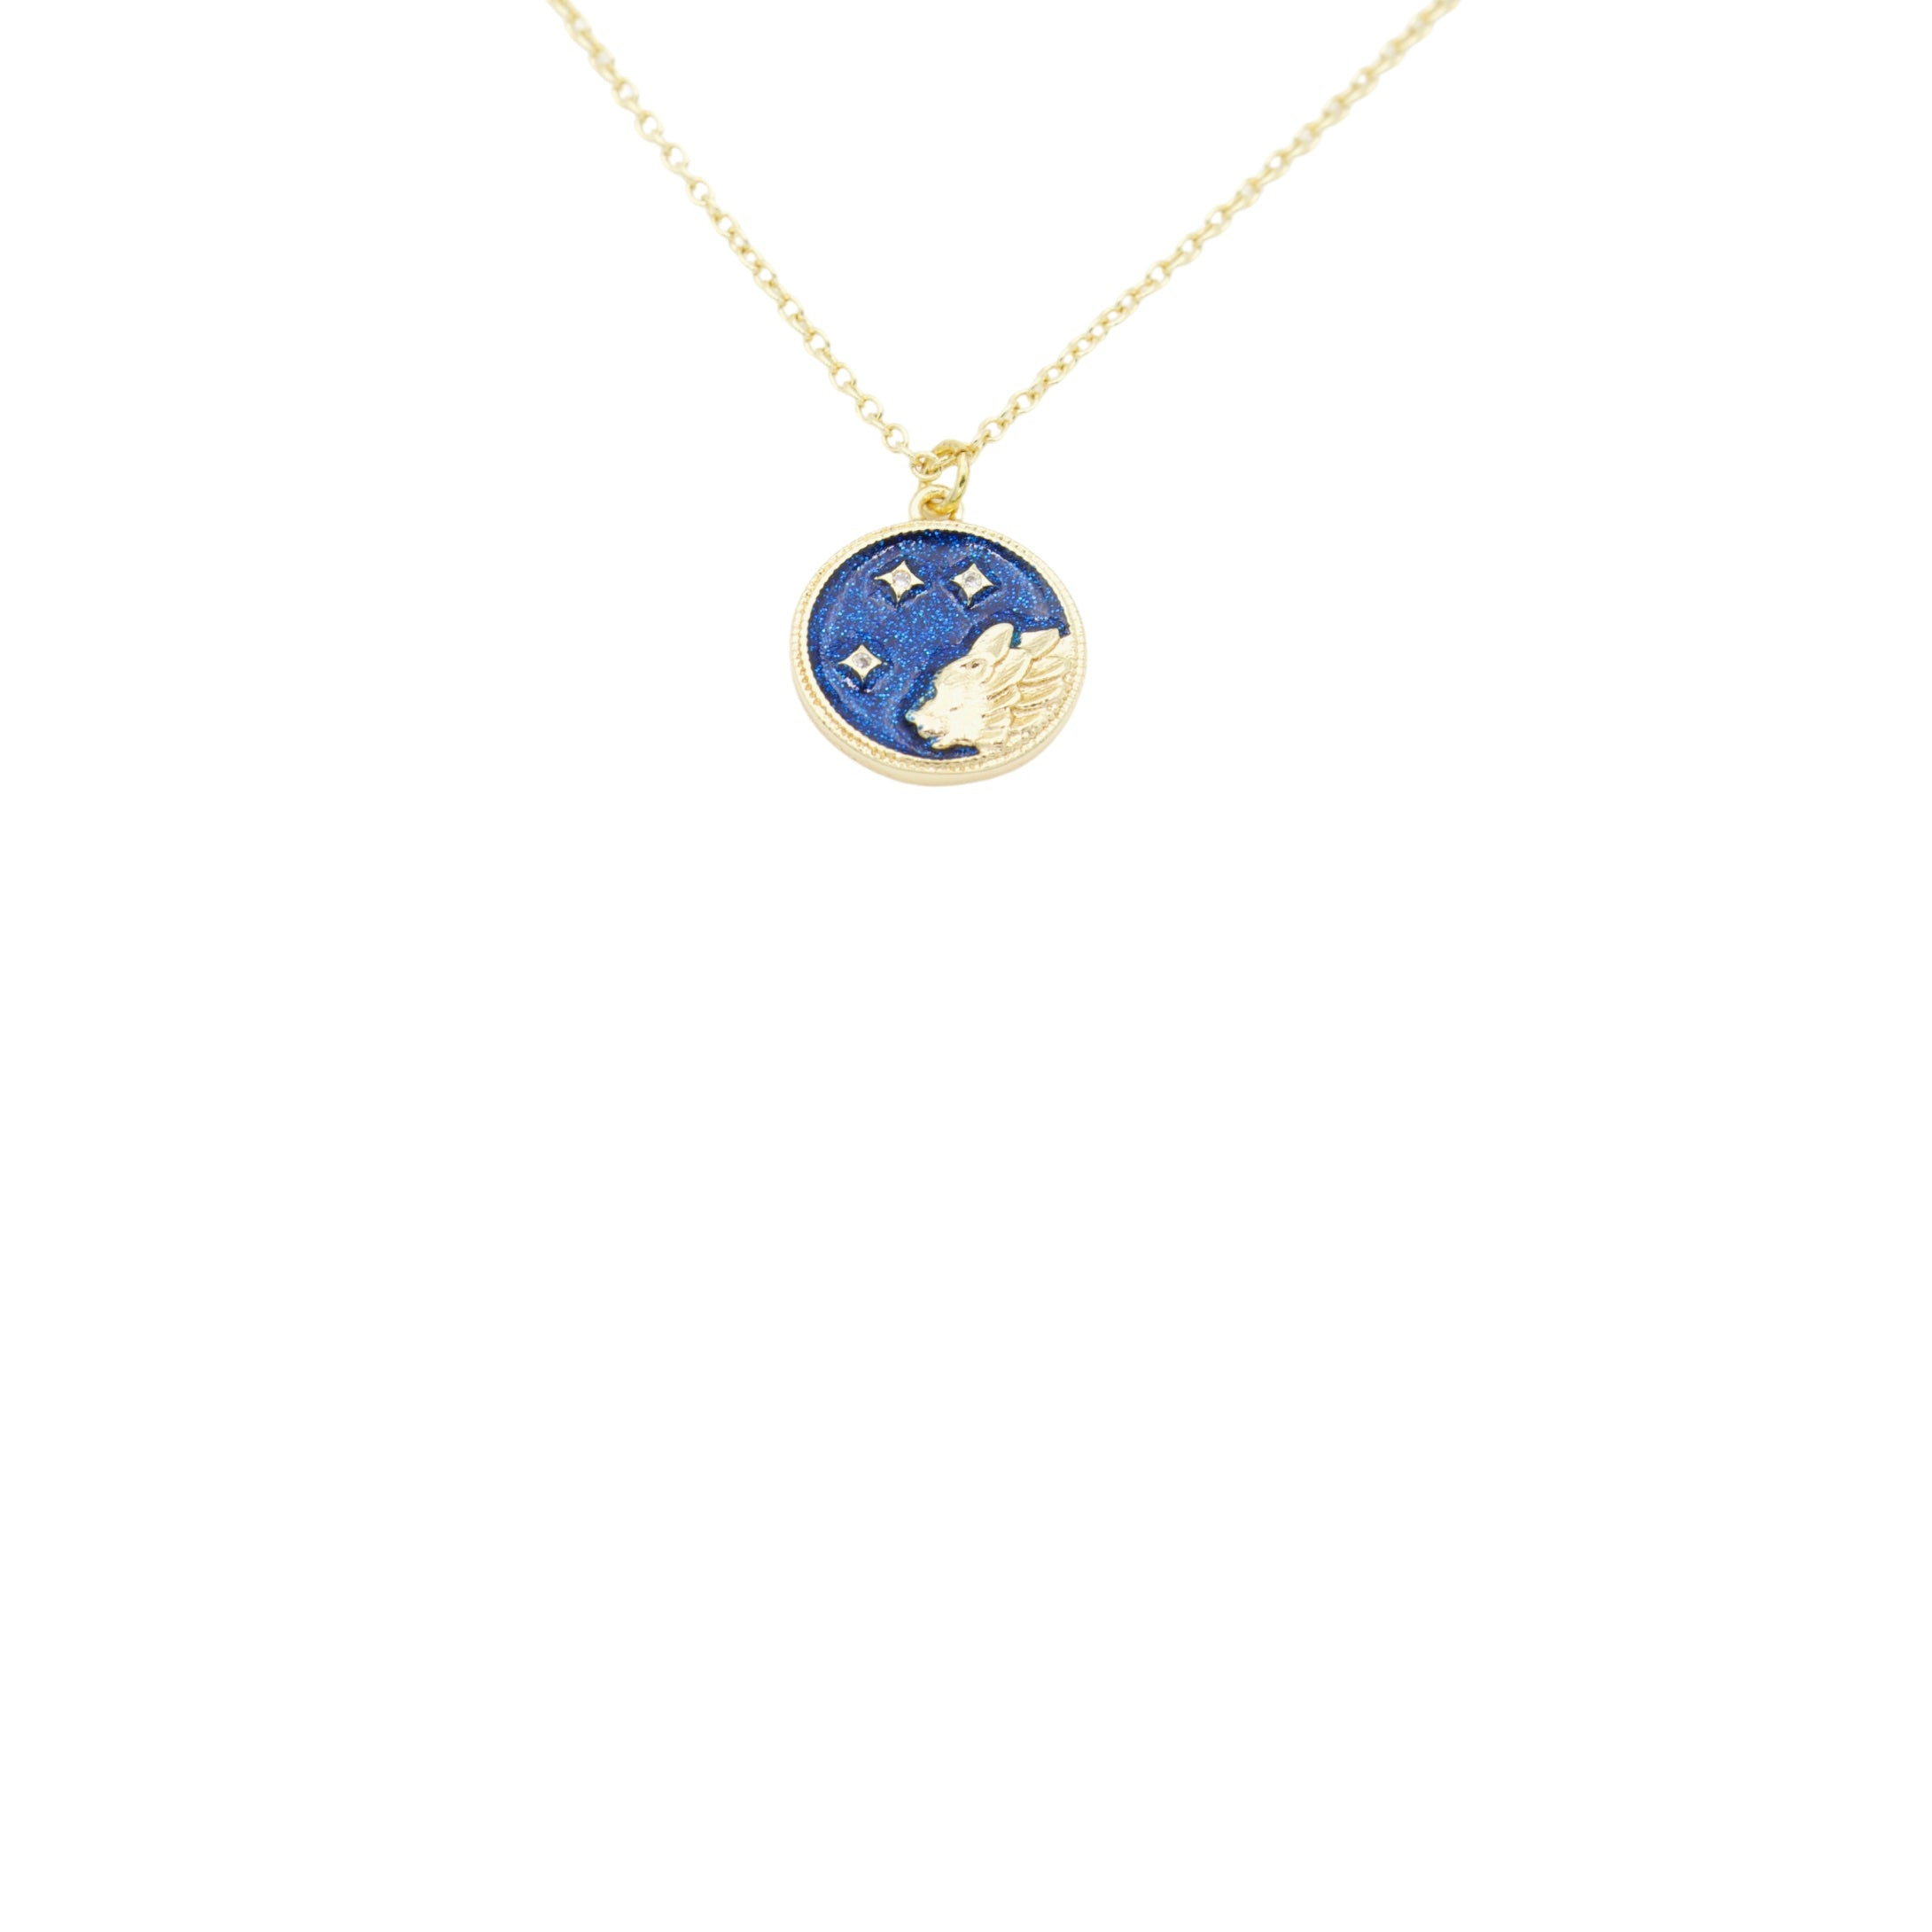 AW Boutique's Zodiac Astro Coin is a dainty pendant full of sparkle and shine.  This piece adds a pop of colour to your everyday wear and at 18 inches is a great length to mix and layer your other chains with.  Proudly wear either your own star sign or the star sign of a loved one close to your heart.  Zodiac shown is Leo.